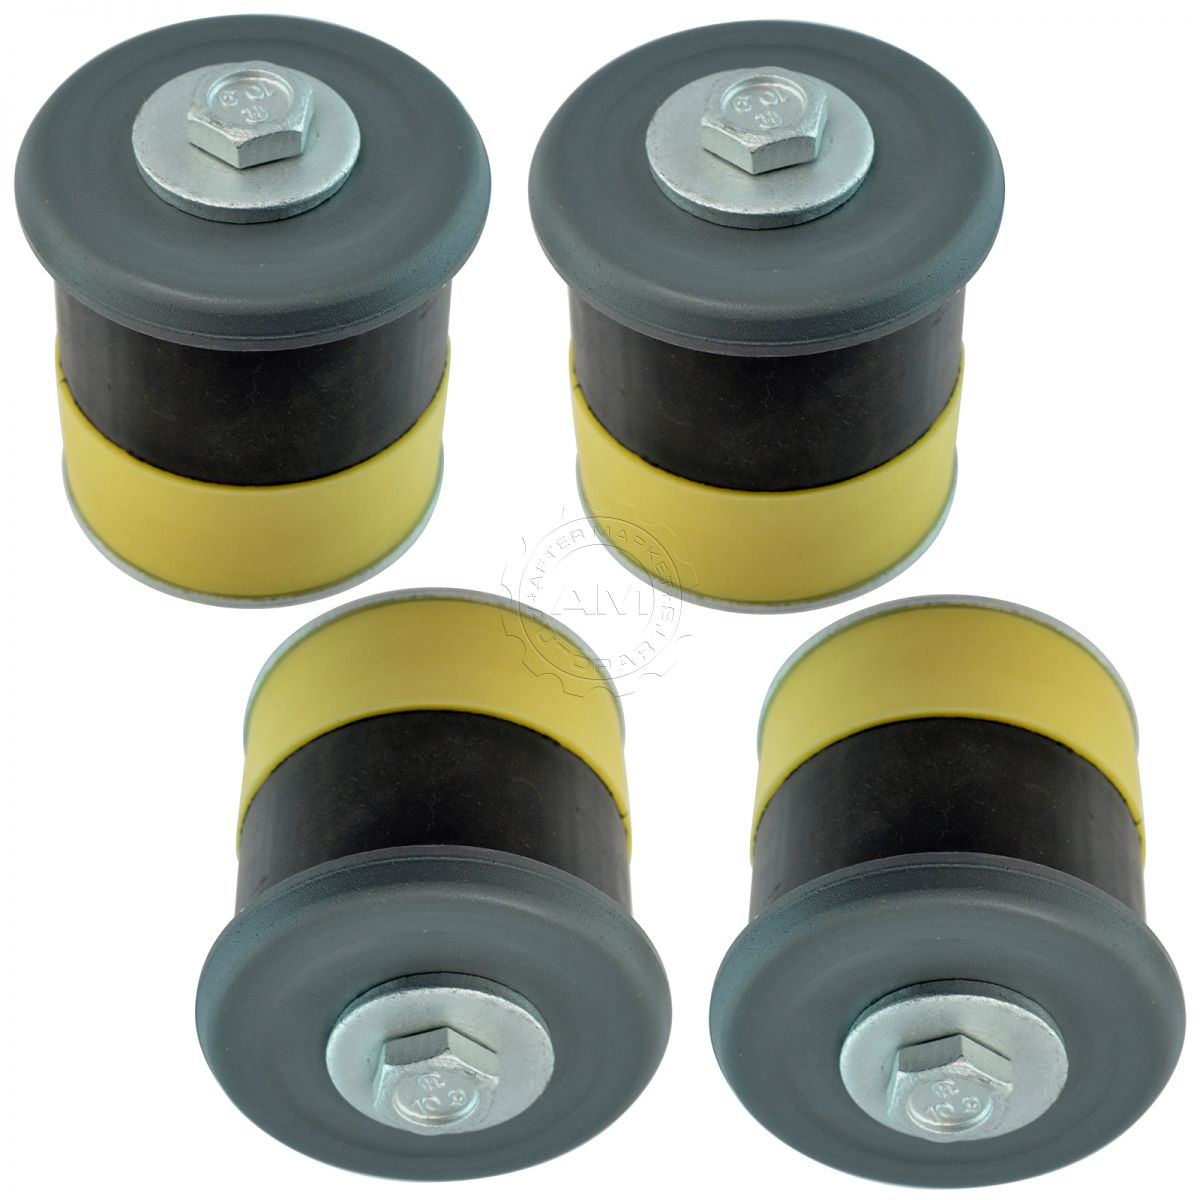 Details about Dorman Rear Body Mount Bushing Insulator & Bolt Kit Position  3 & 4 for ford